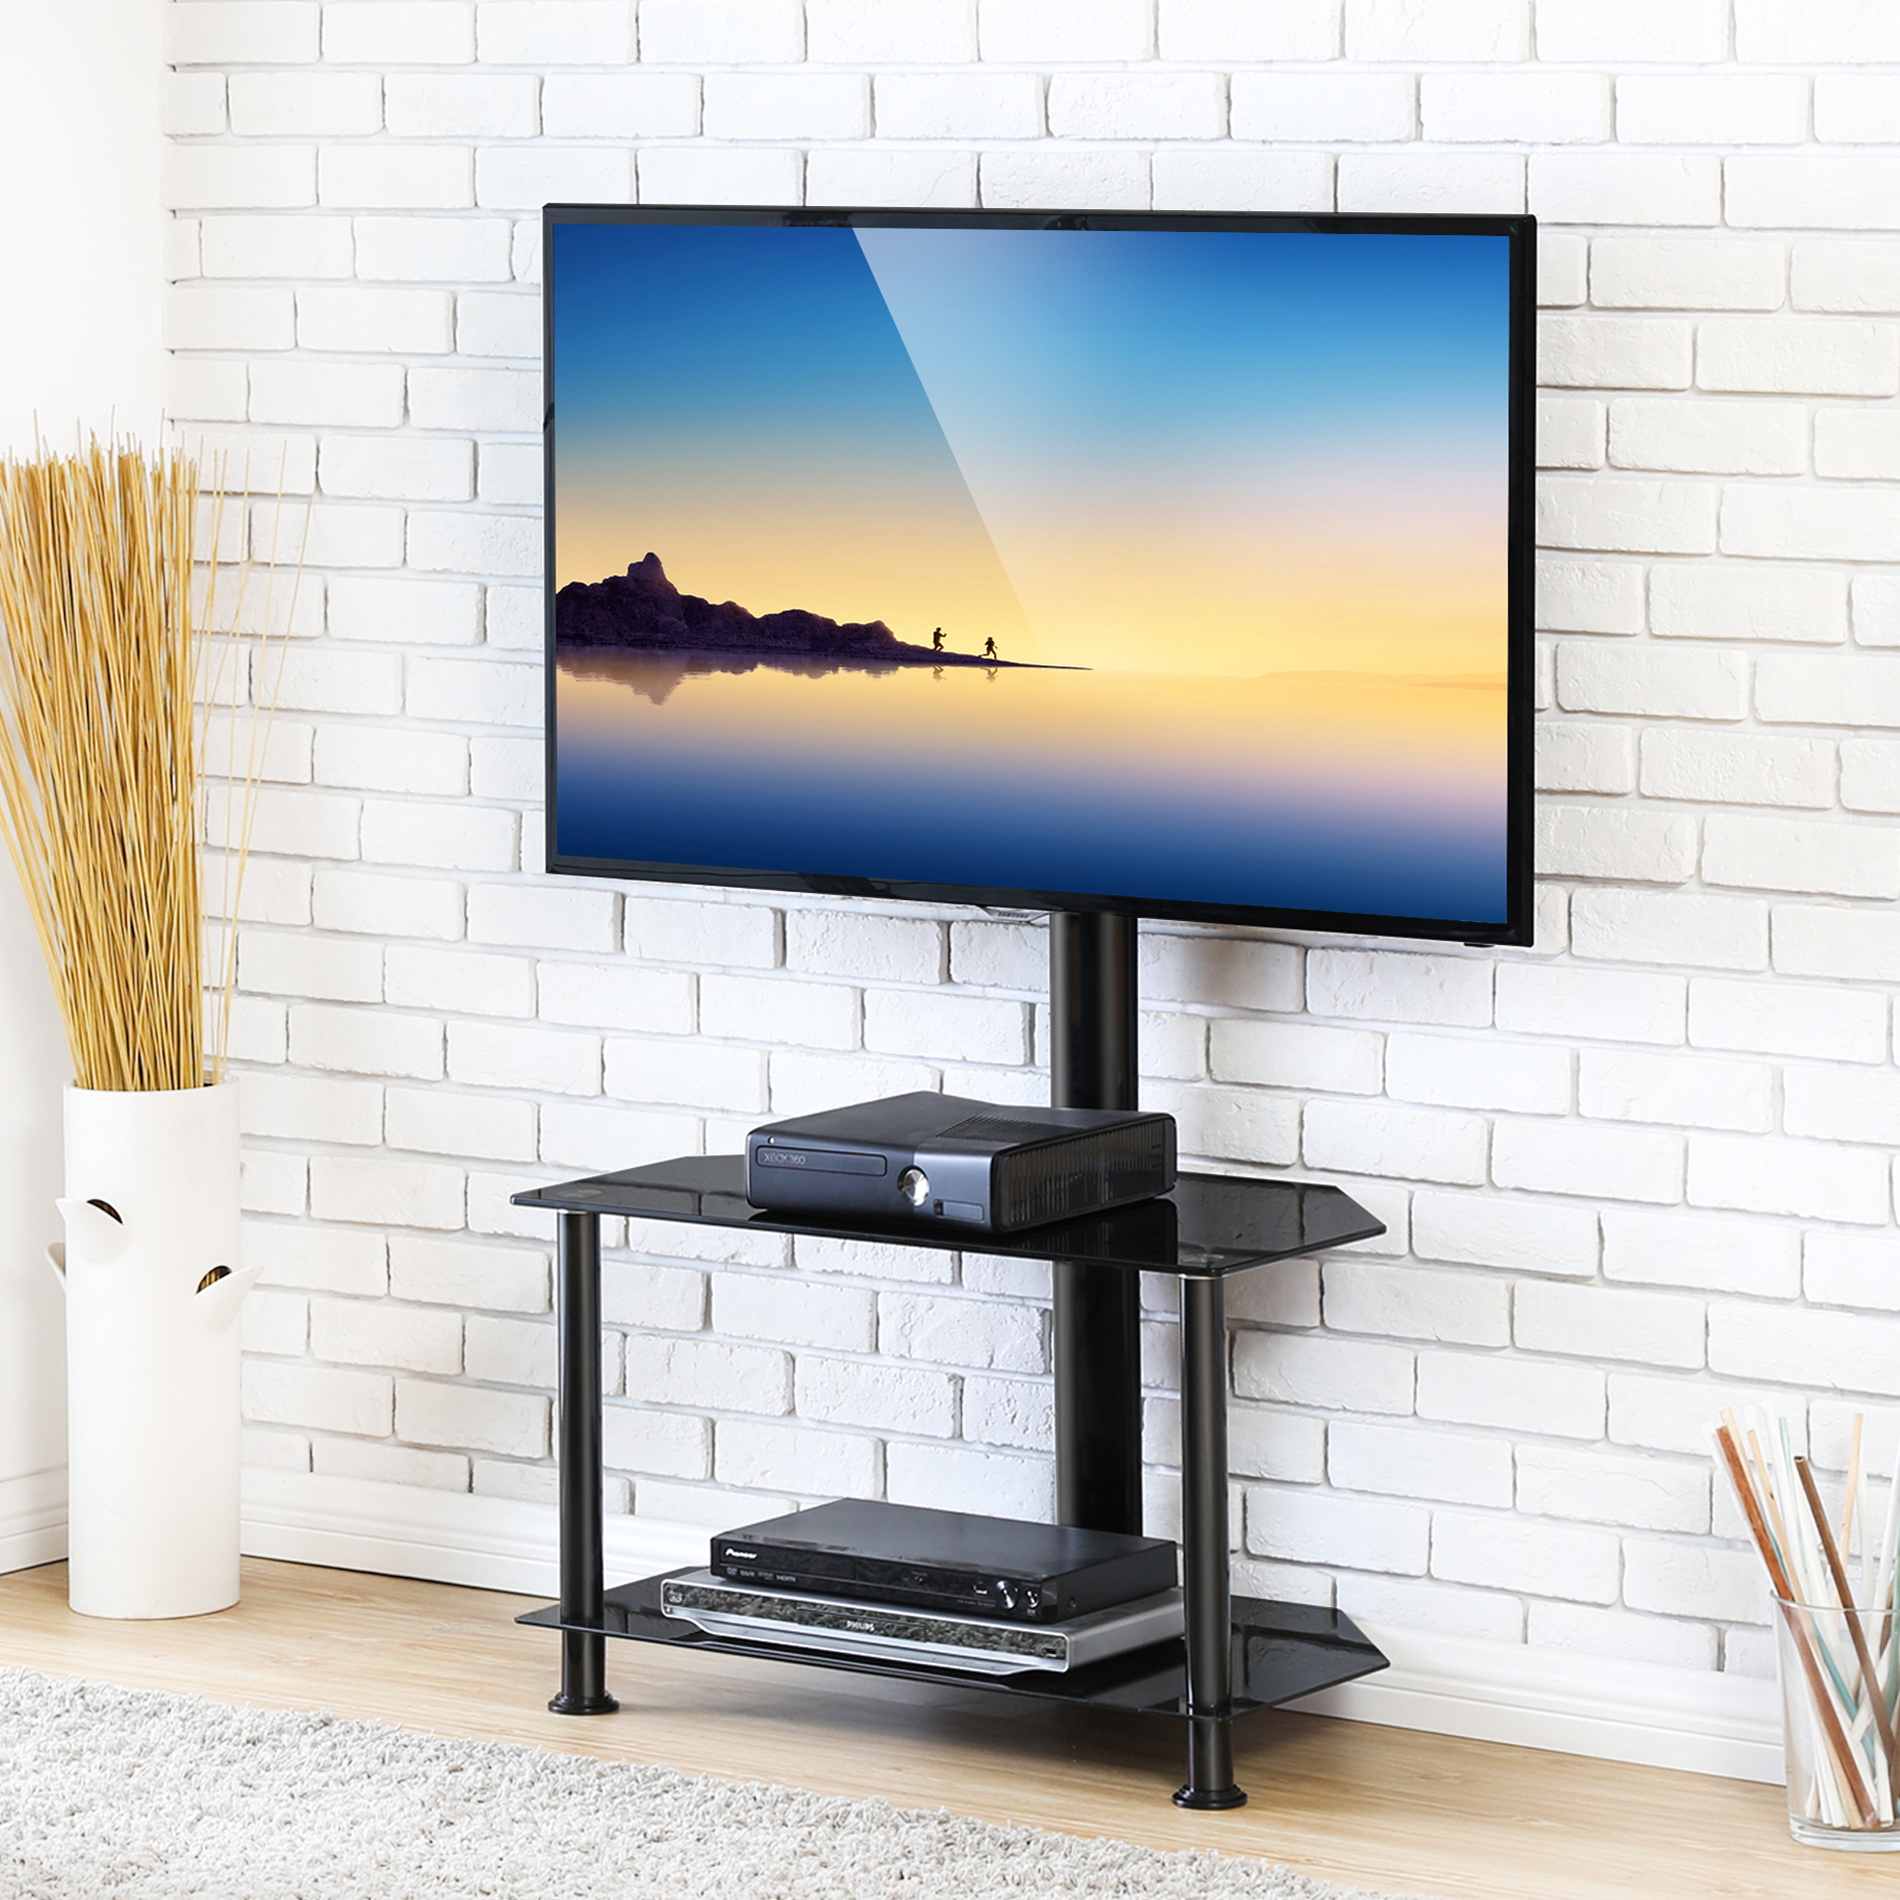 Click image to open expanded view FITUEYES Floor TV Stand with Swivel Mount and Height Adjustable Flat Curved Screen TV for 32 50 55 inch Vizio/Sumsung/Sony Tvs Max VESA 400x400 TW207502MB